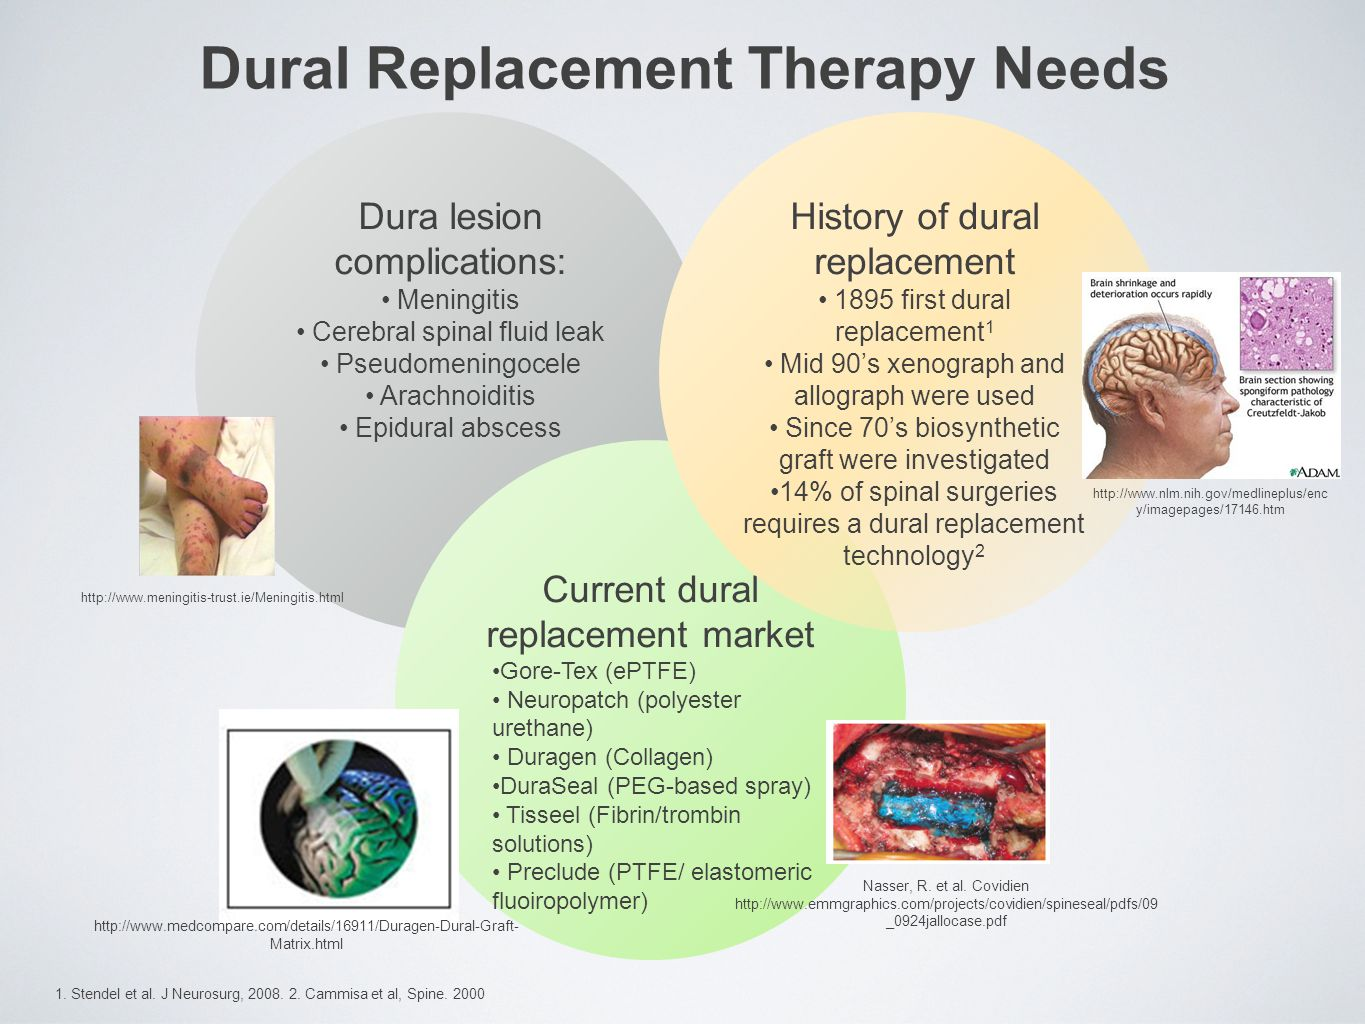 Dural Replacement Therapy Needs